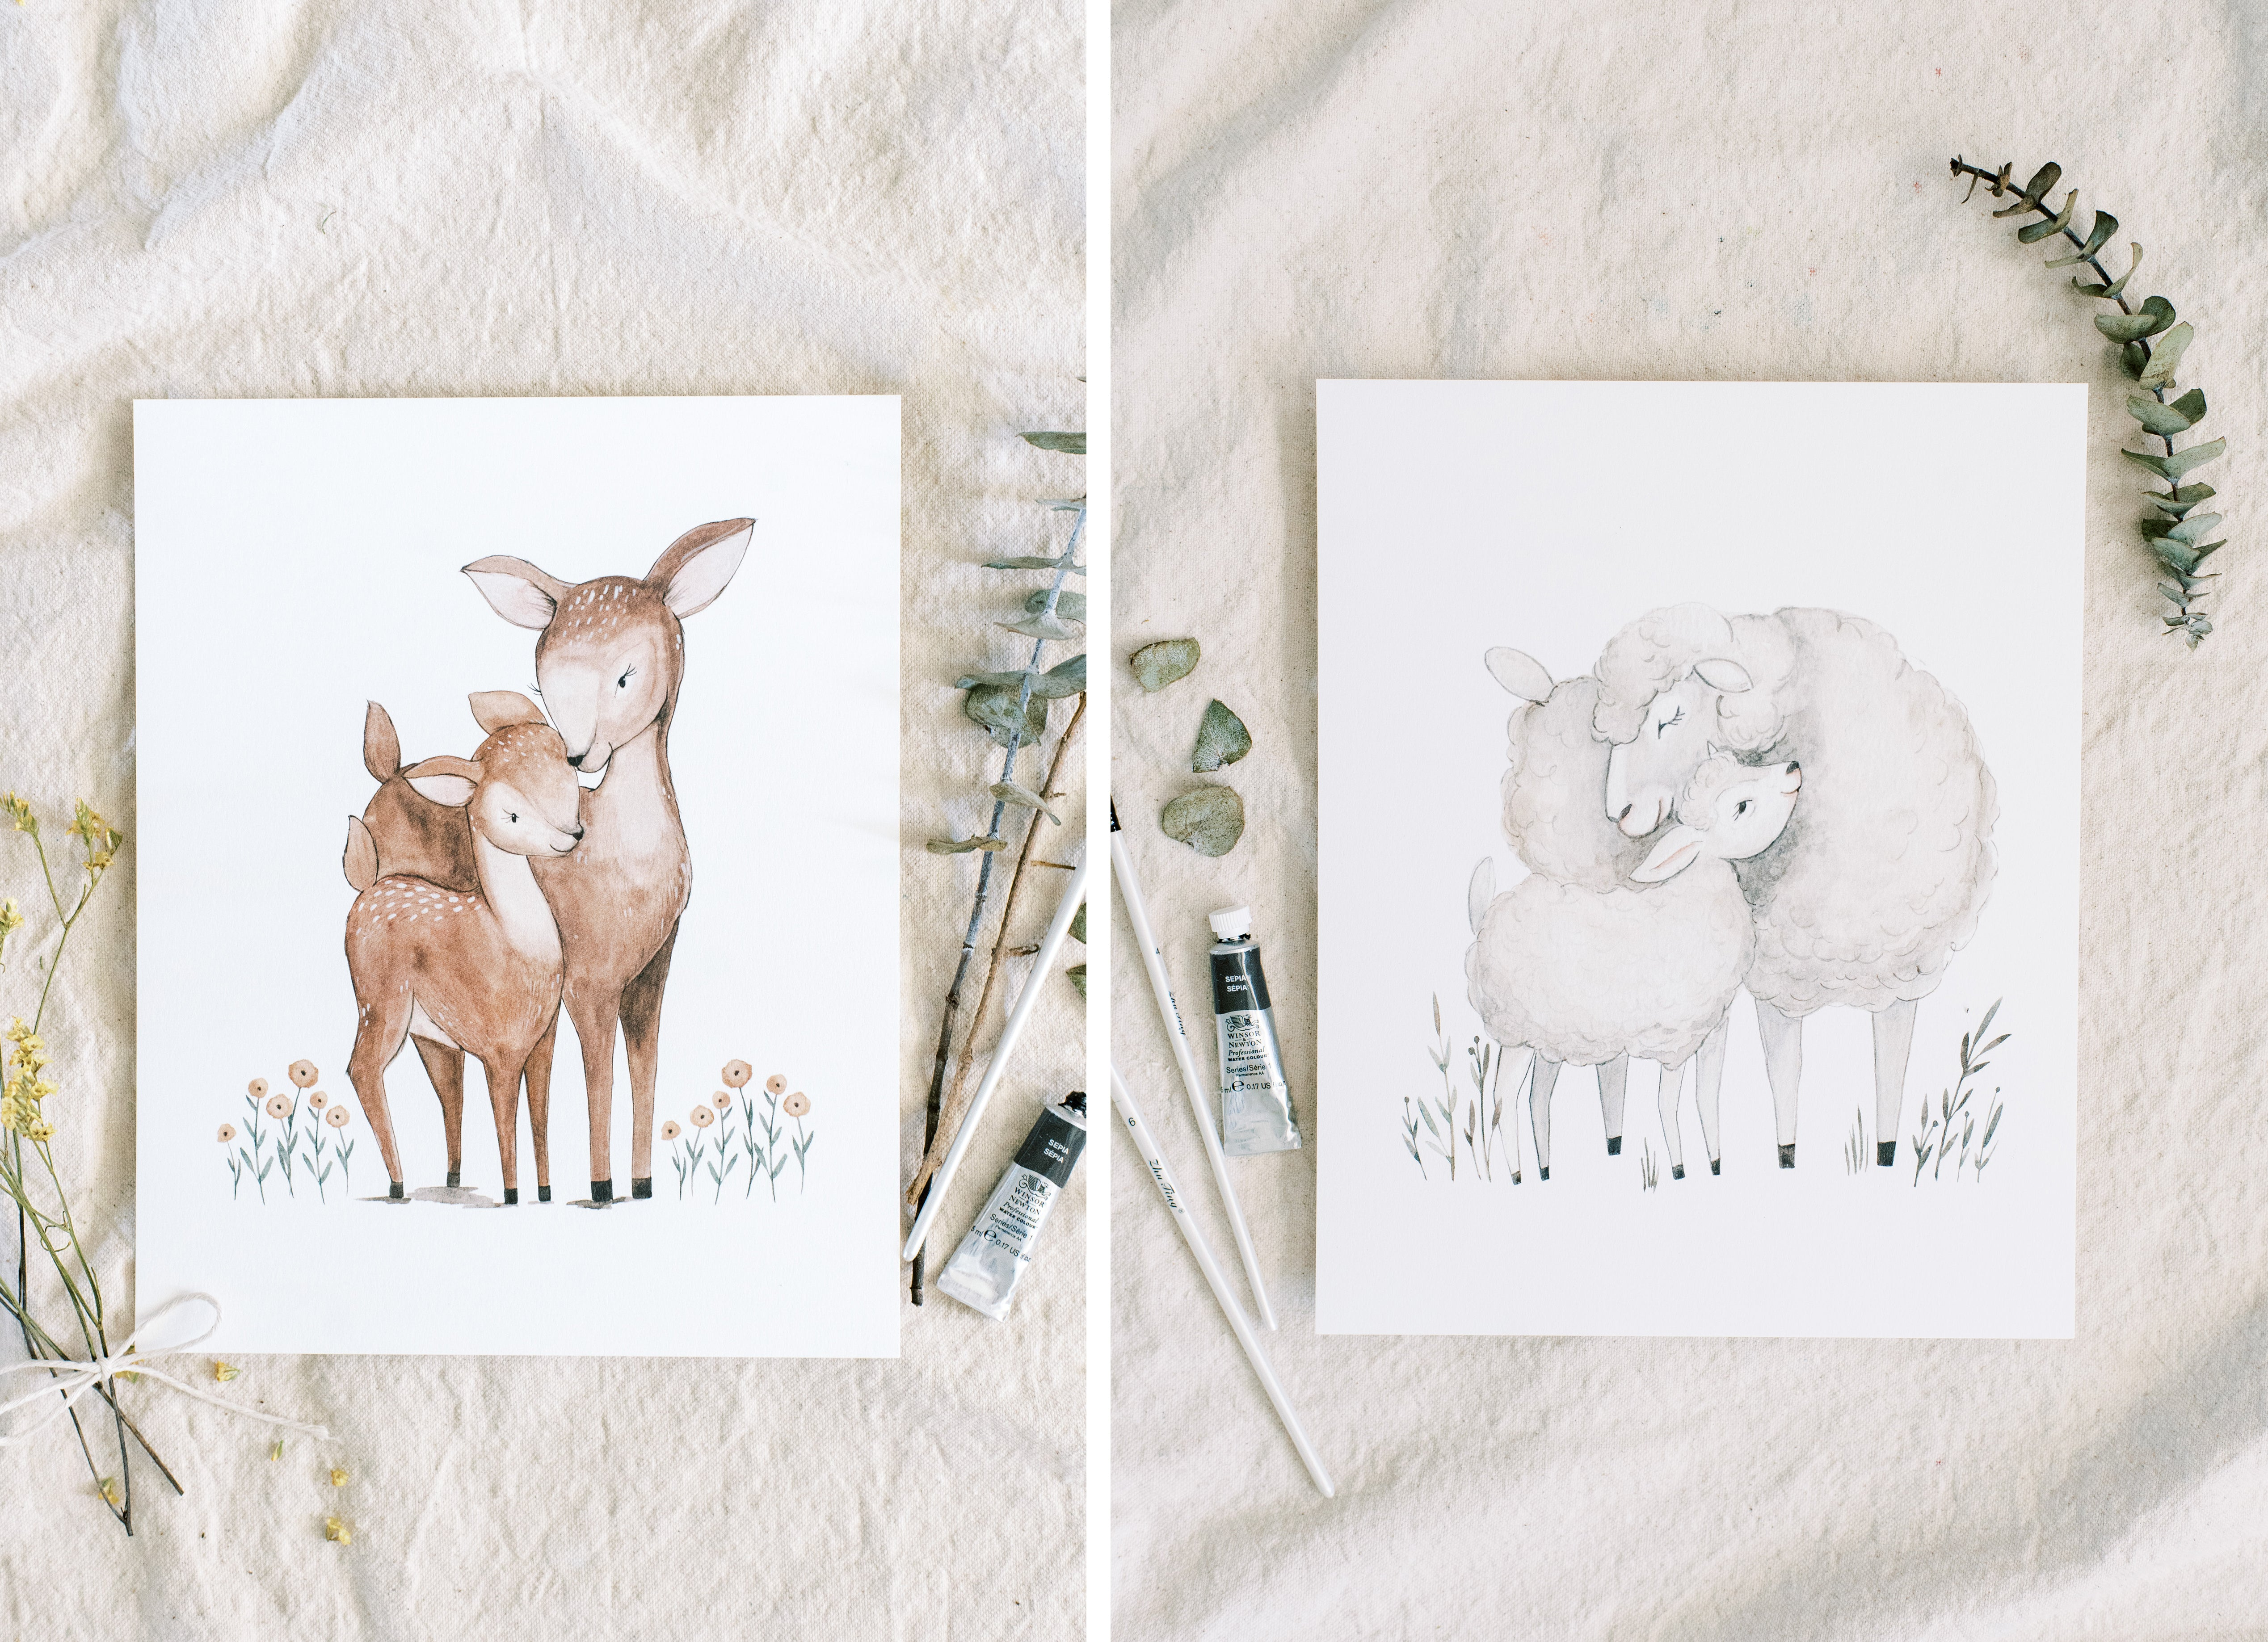 paining of deer and sheep